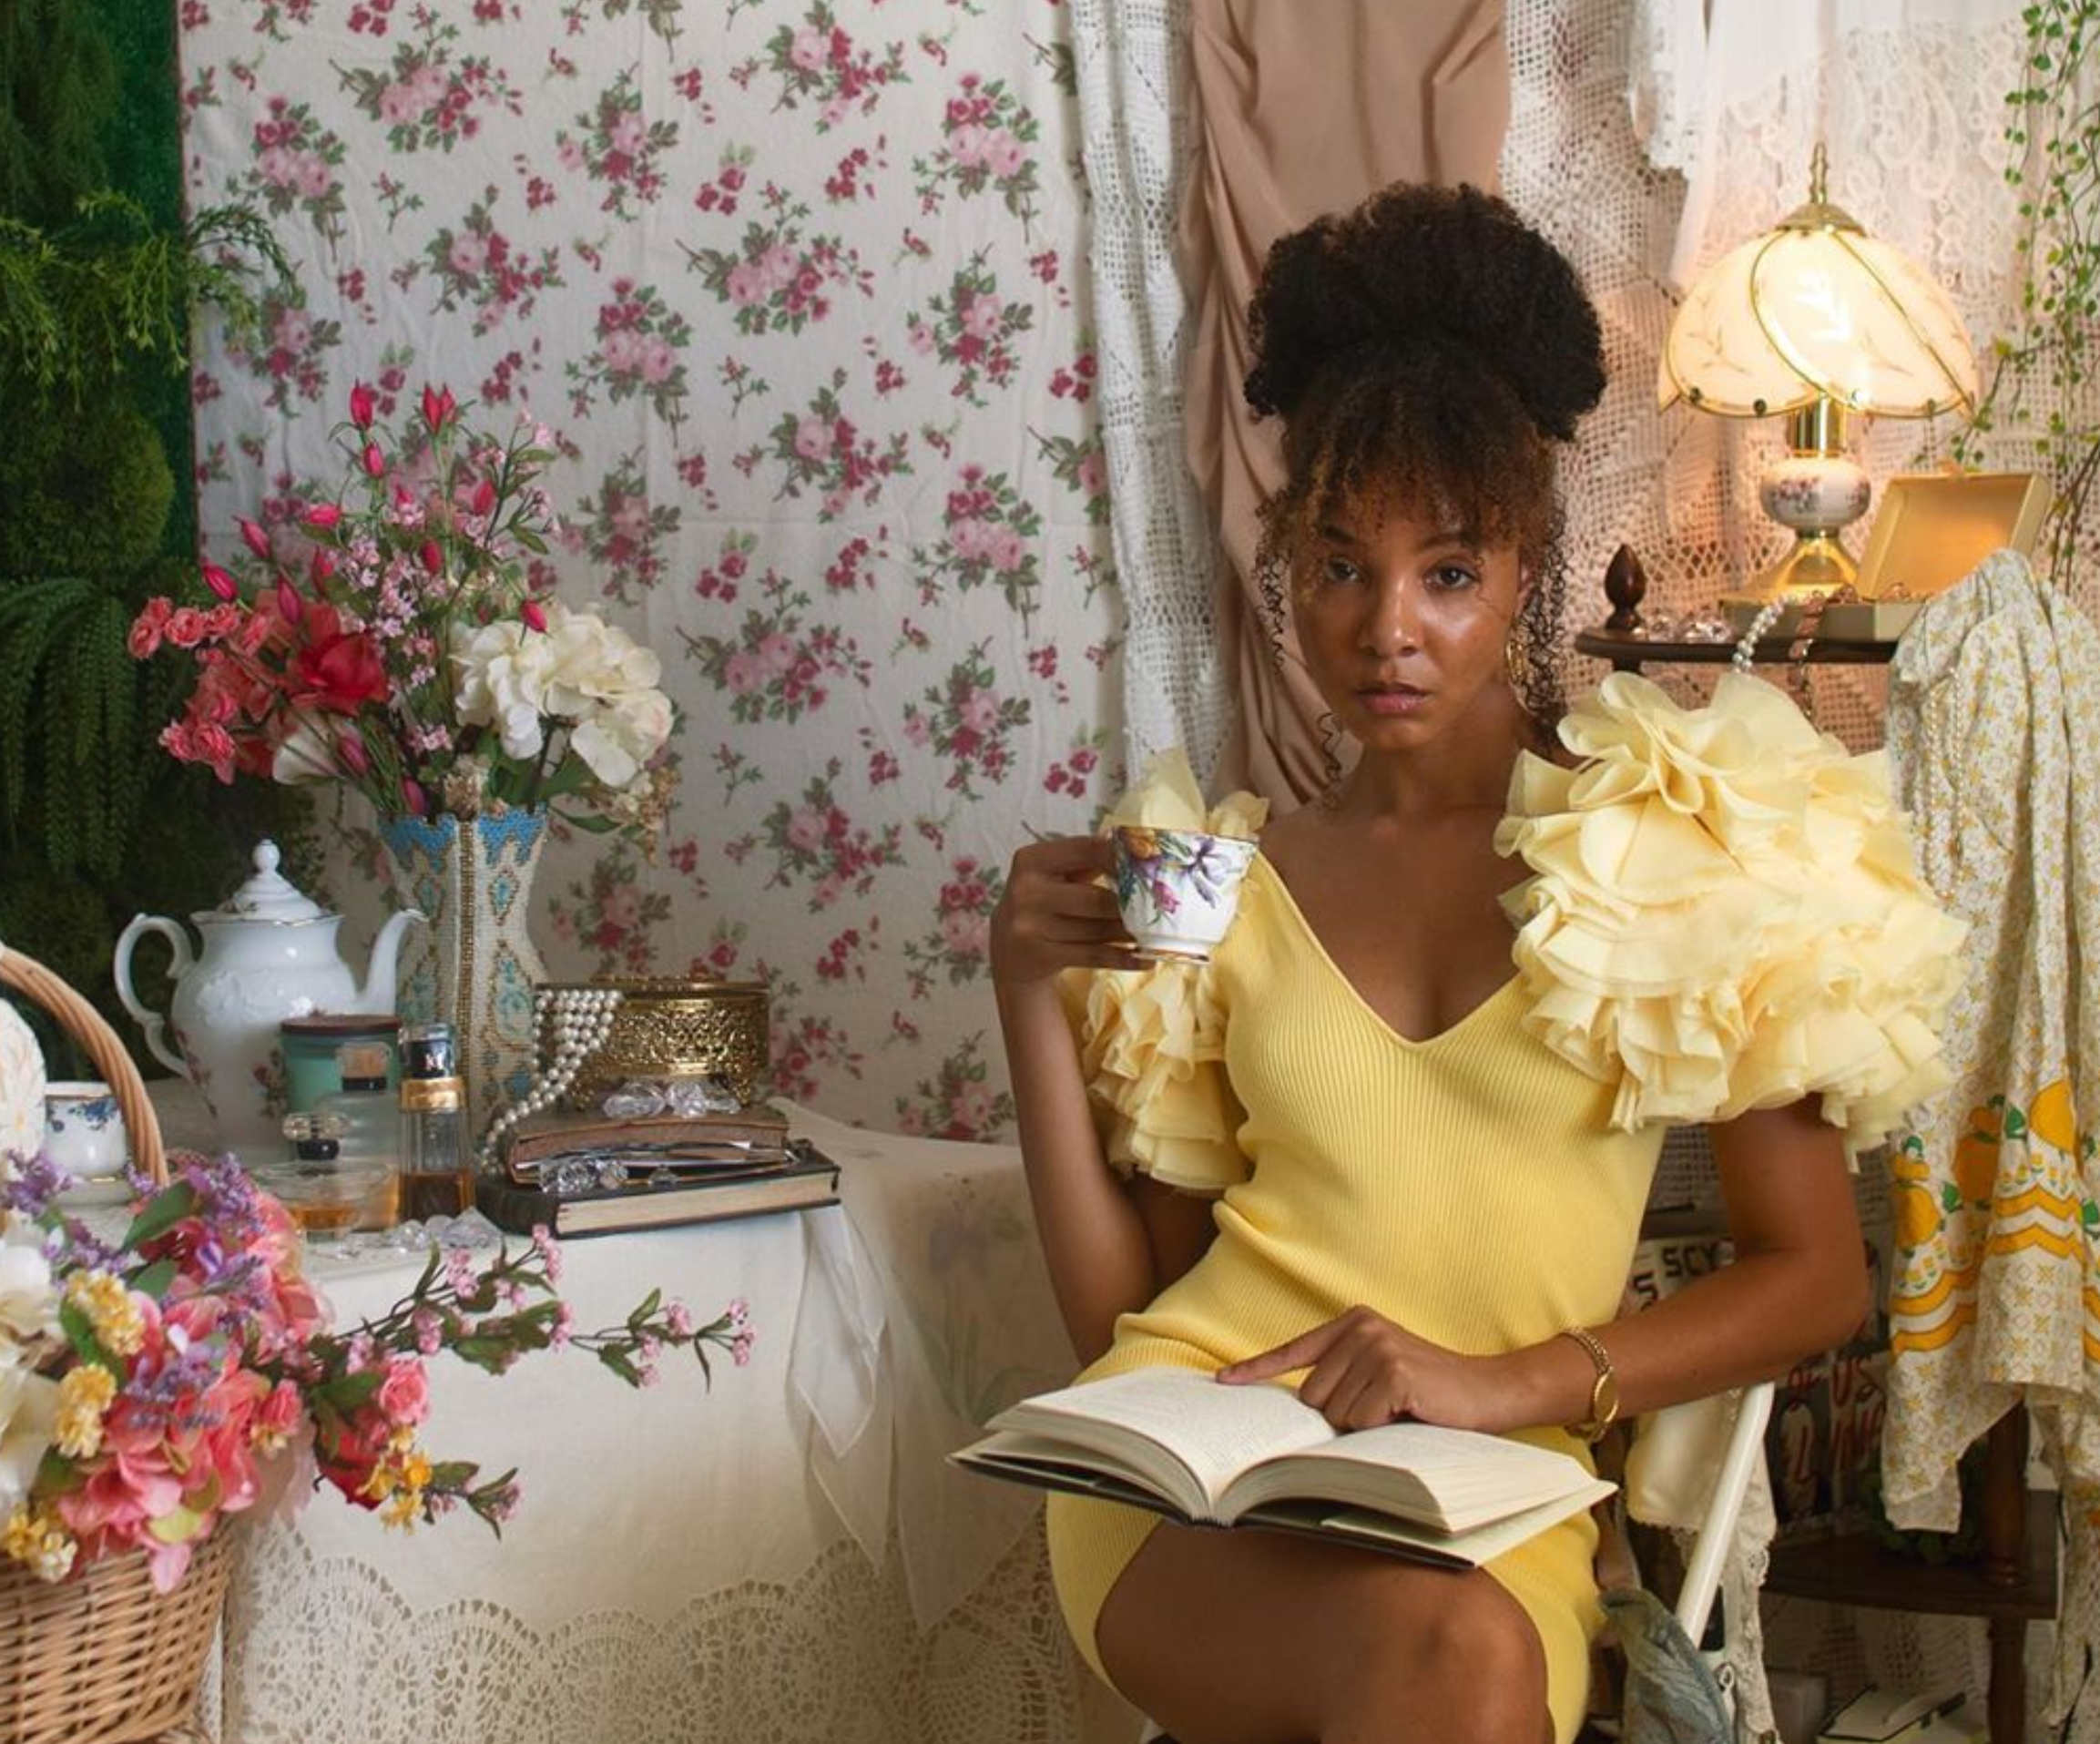 Kimberly Douglas, a Black woman, wears a dainty yellow dress and is surrounded by various soft fabrics. She sits at a table with a white tea set and holds a tea cup.